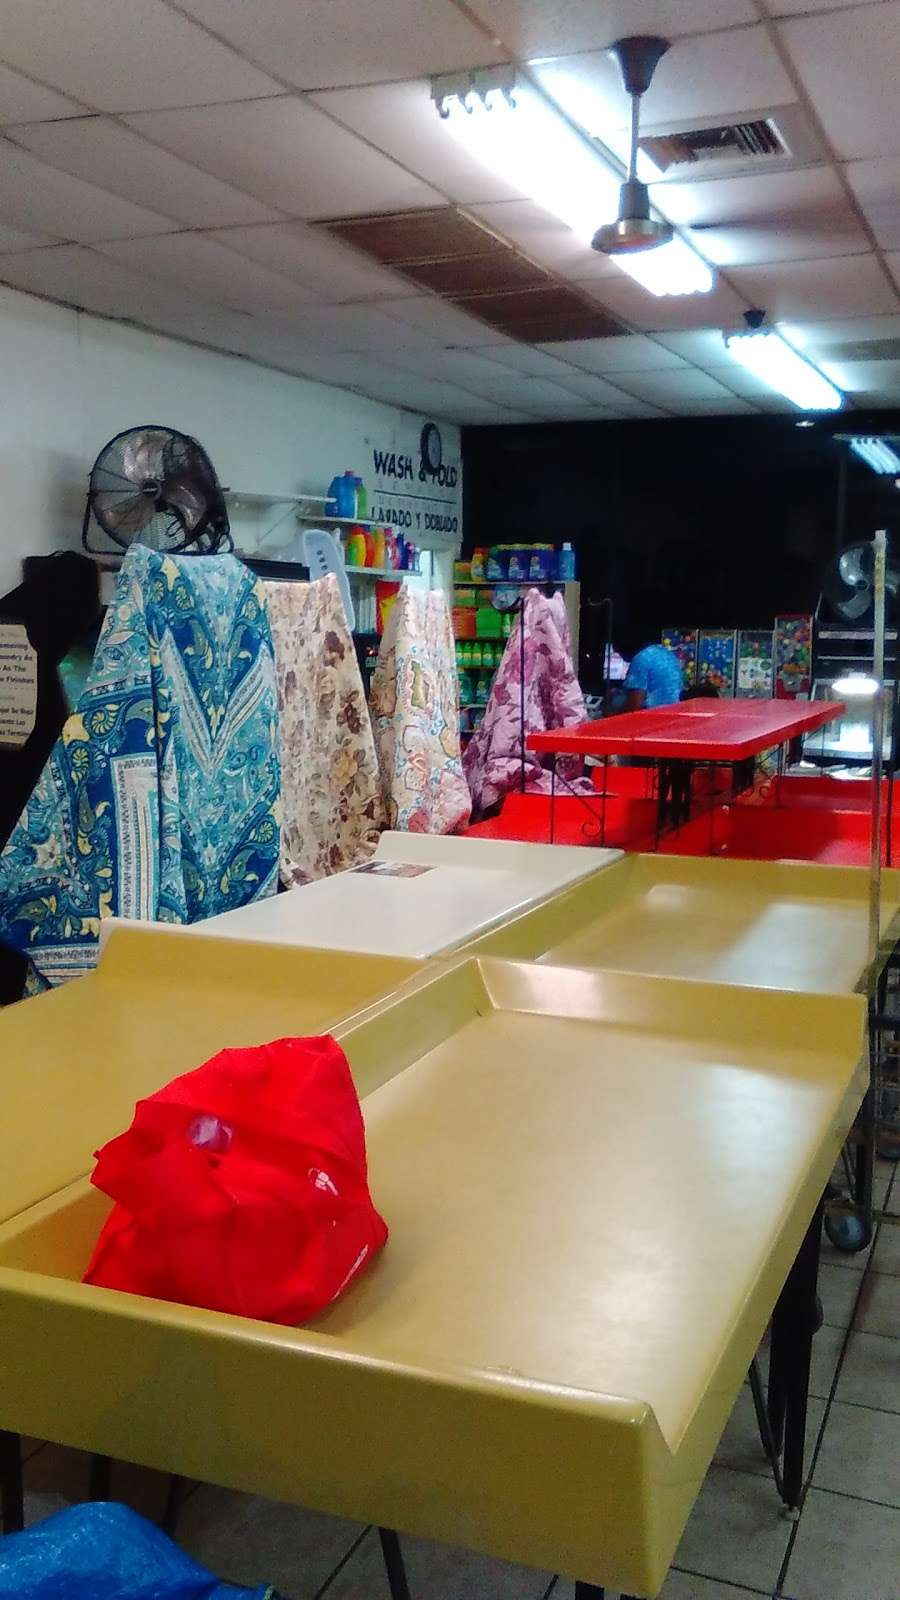 A-1 Washateria and dry cleaners - laundry  | Photo 2 of 10 | Address: 28106 Heidi Ln, Tomball, TX 77375, USA | Phone: (281) 357-0678